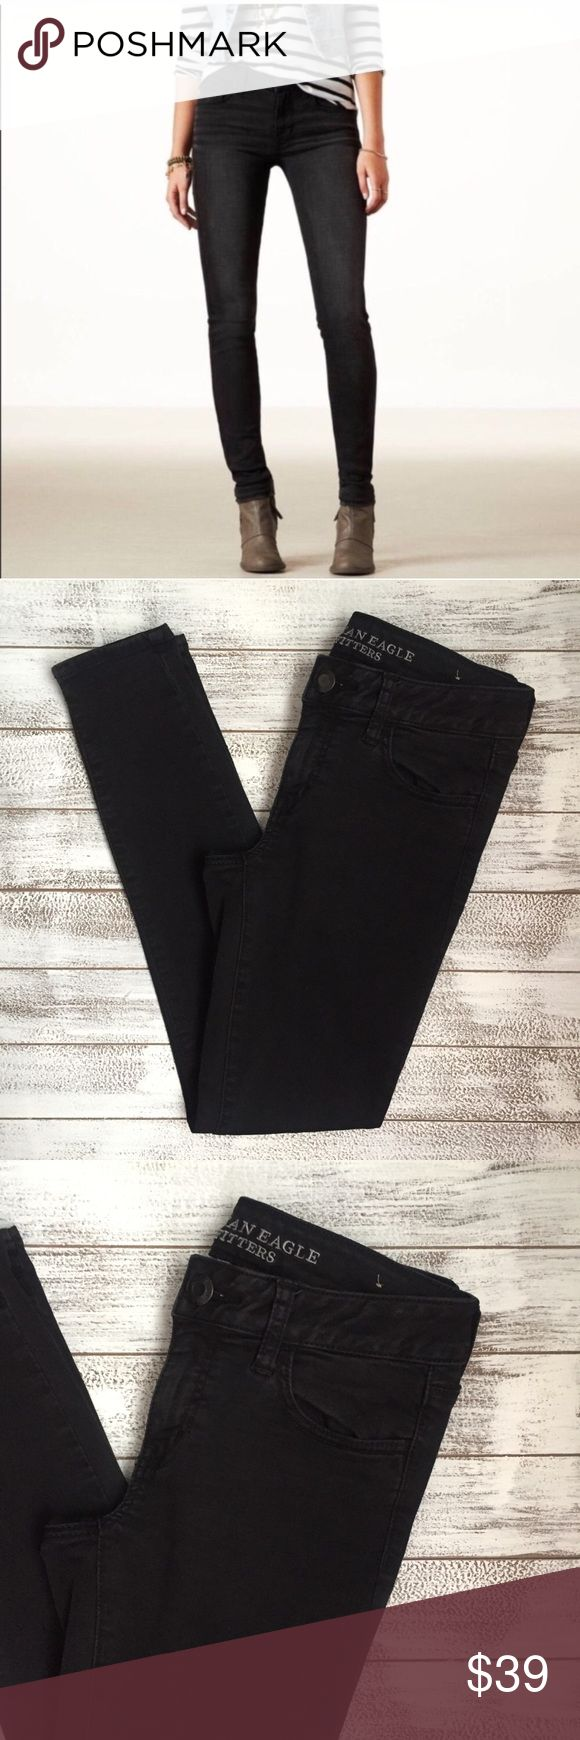 "ONE HOUR 💥 AMERICAN EAGLE JEAN JEGGING  American Eagle jean JEGGING. Super stretch. Mint condition. NWOT. Size 4 Short.  Waist 14"" Inseam 29"" Length 36"" American Eagle Outfitters Jeans Skinny"